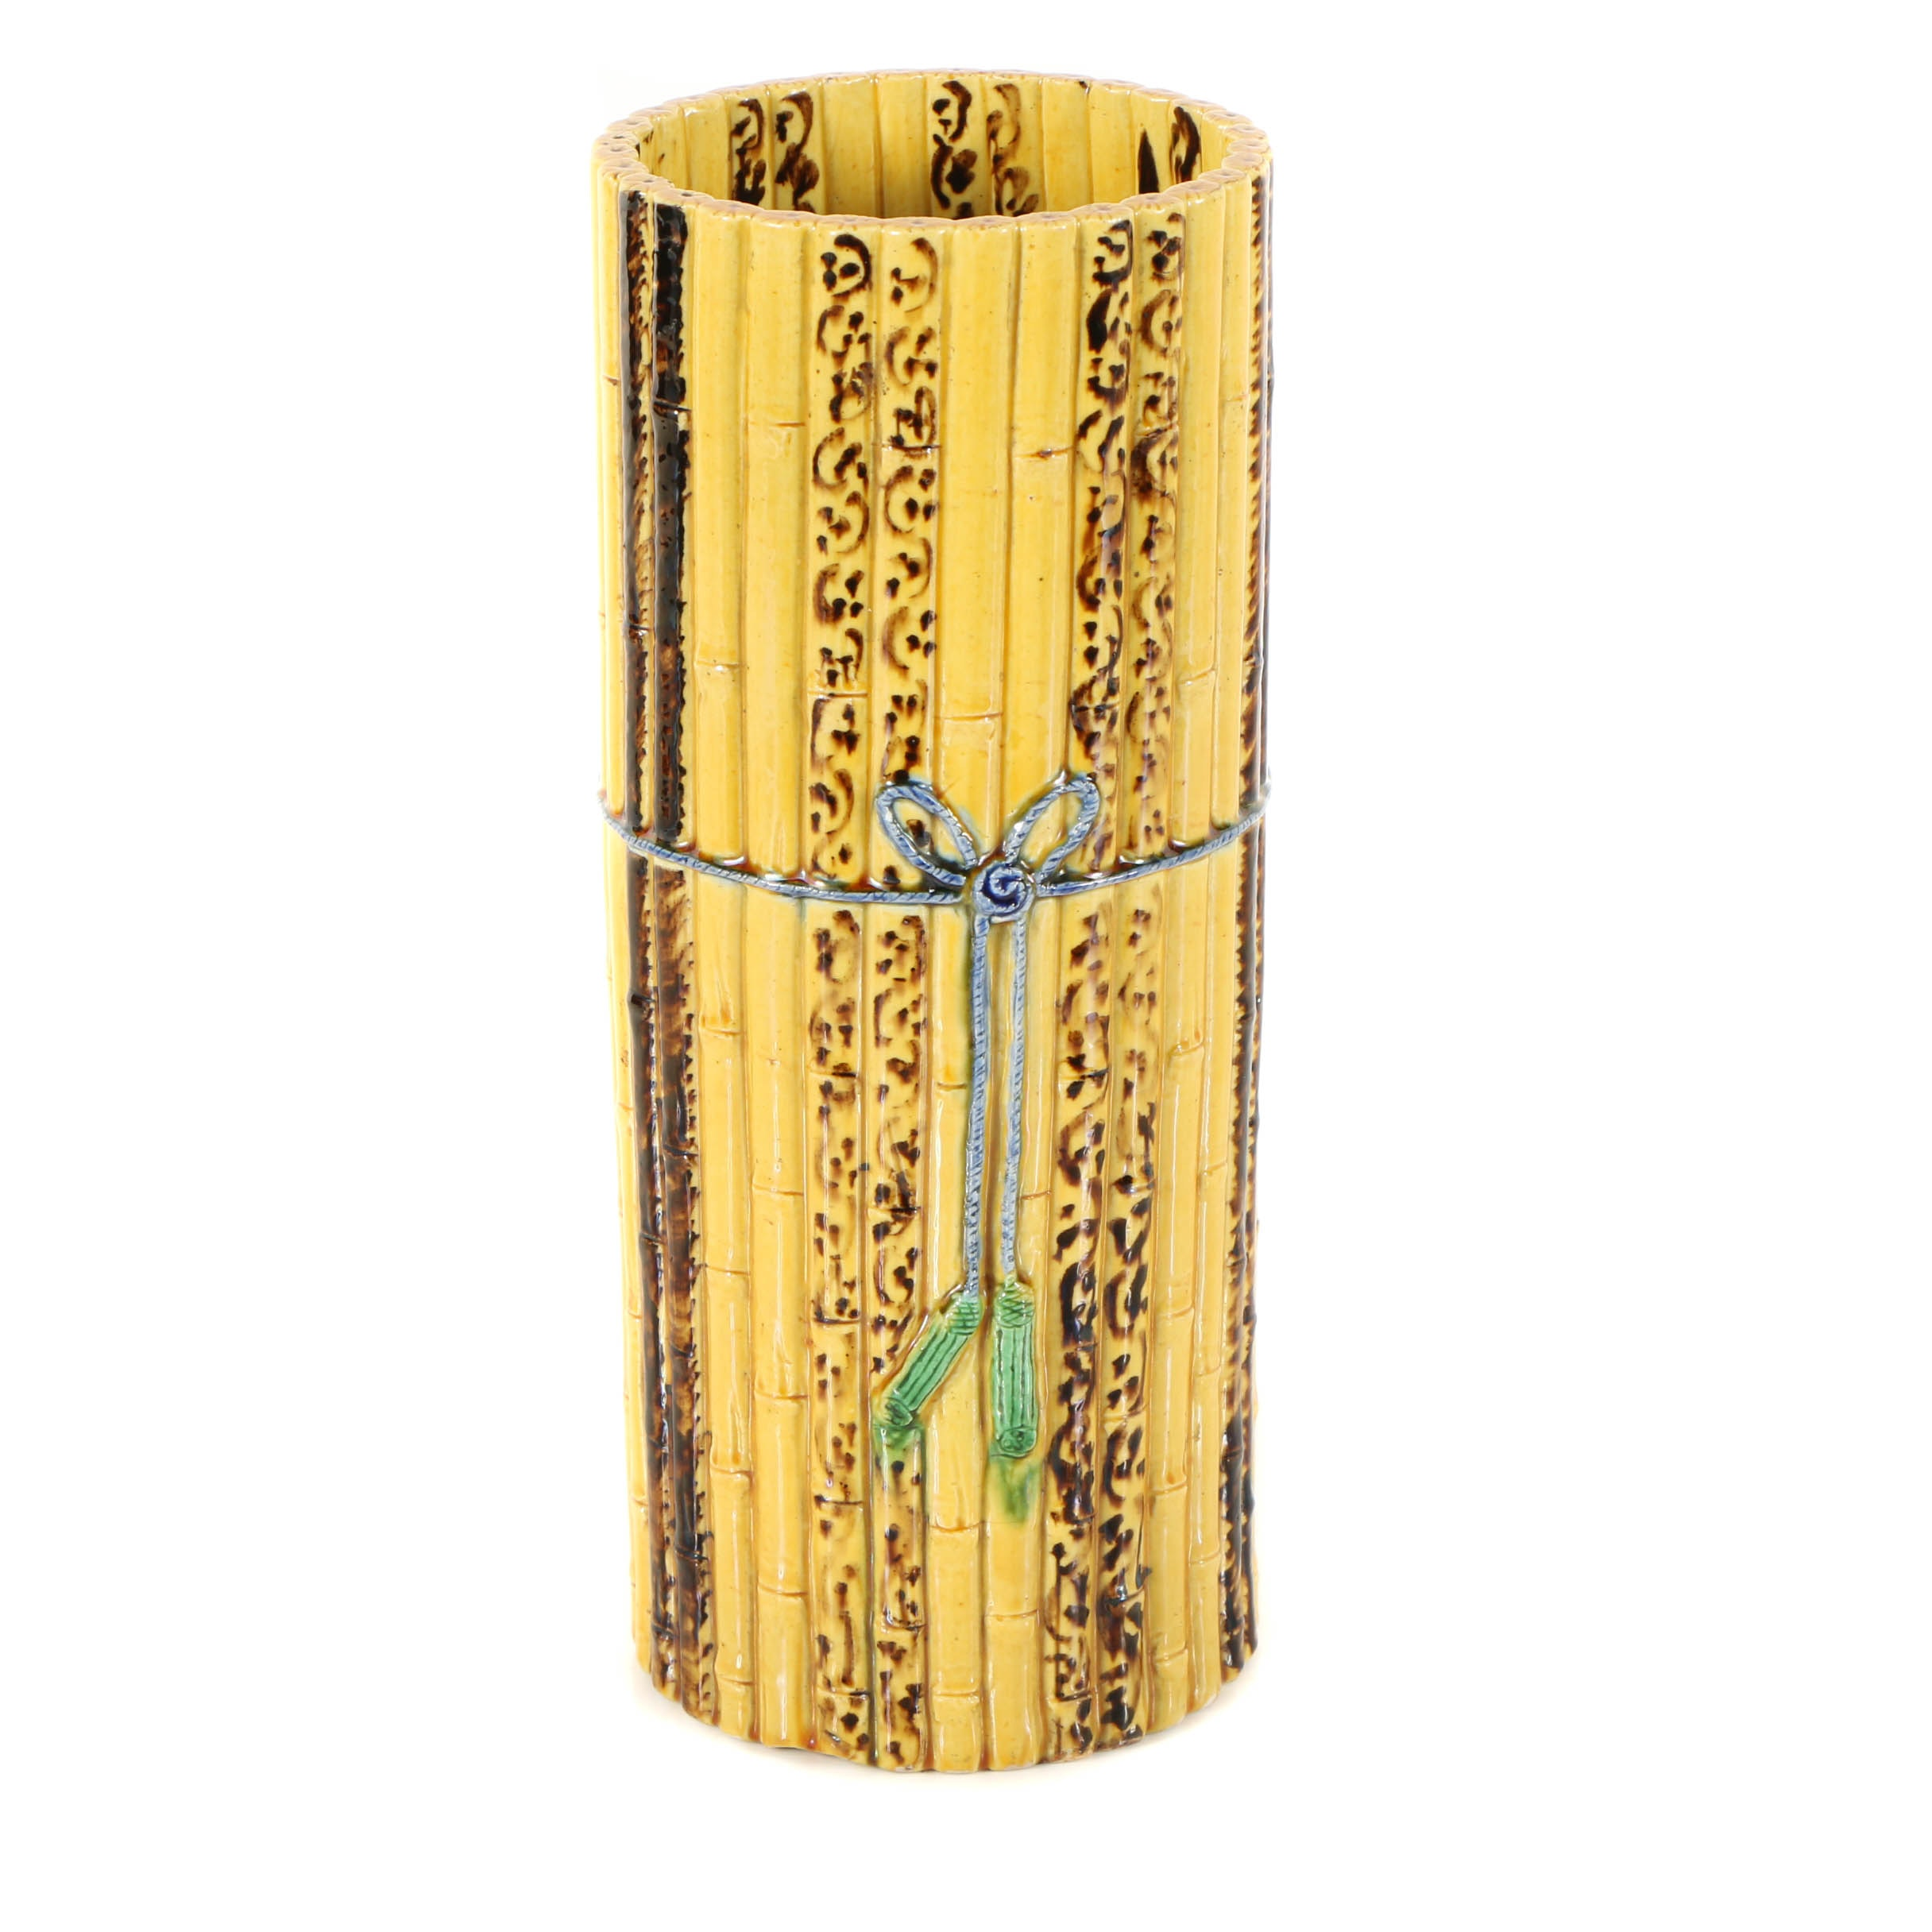 Ceramic Vase with a Tied Bamboo Motif